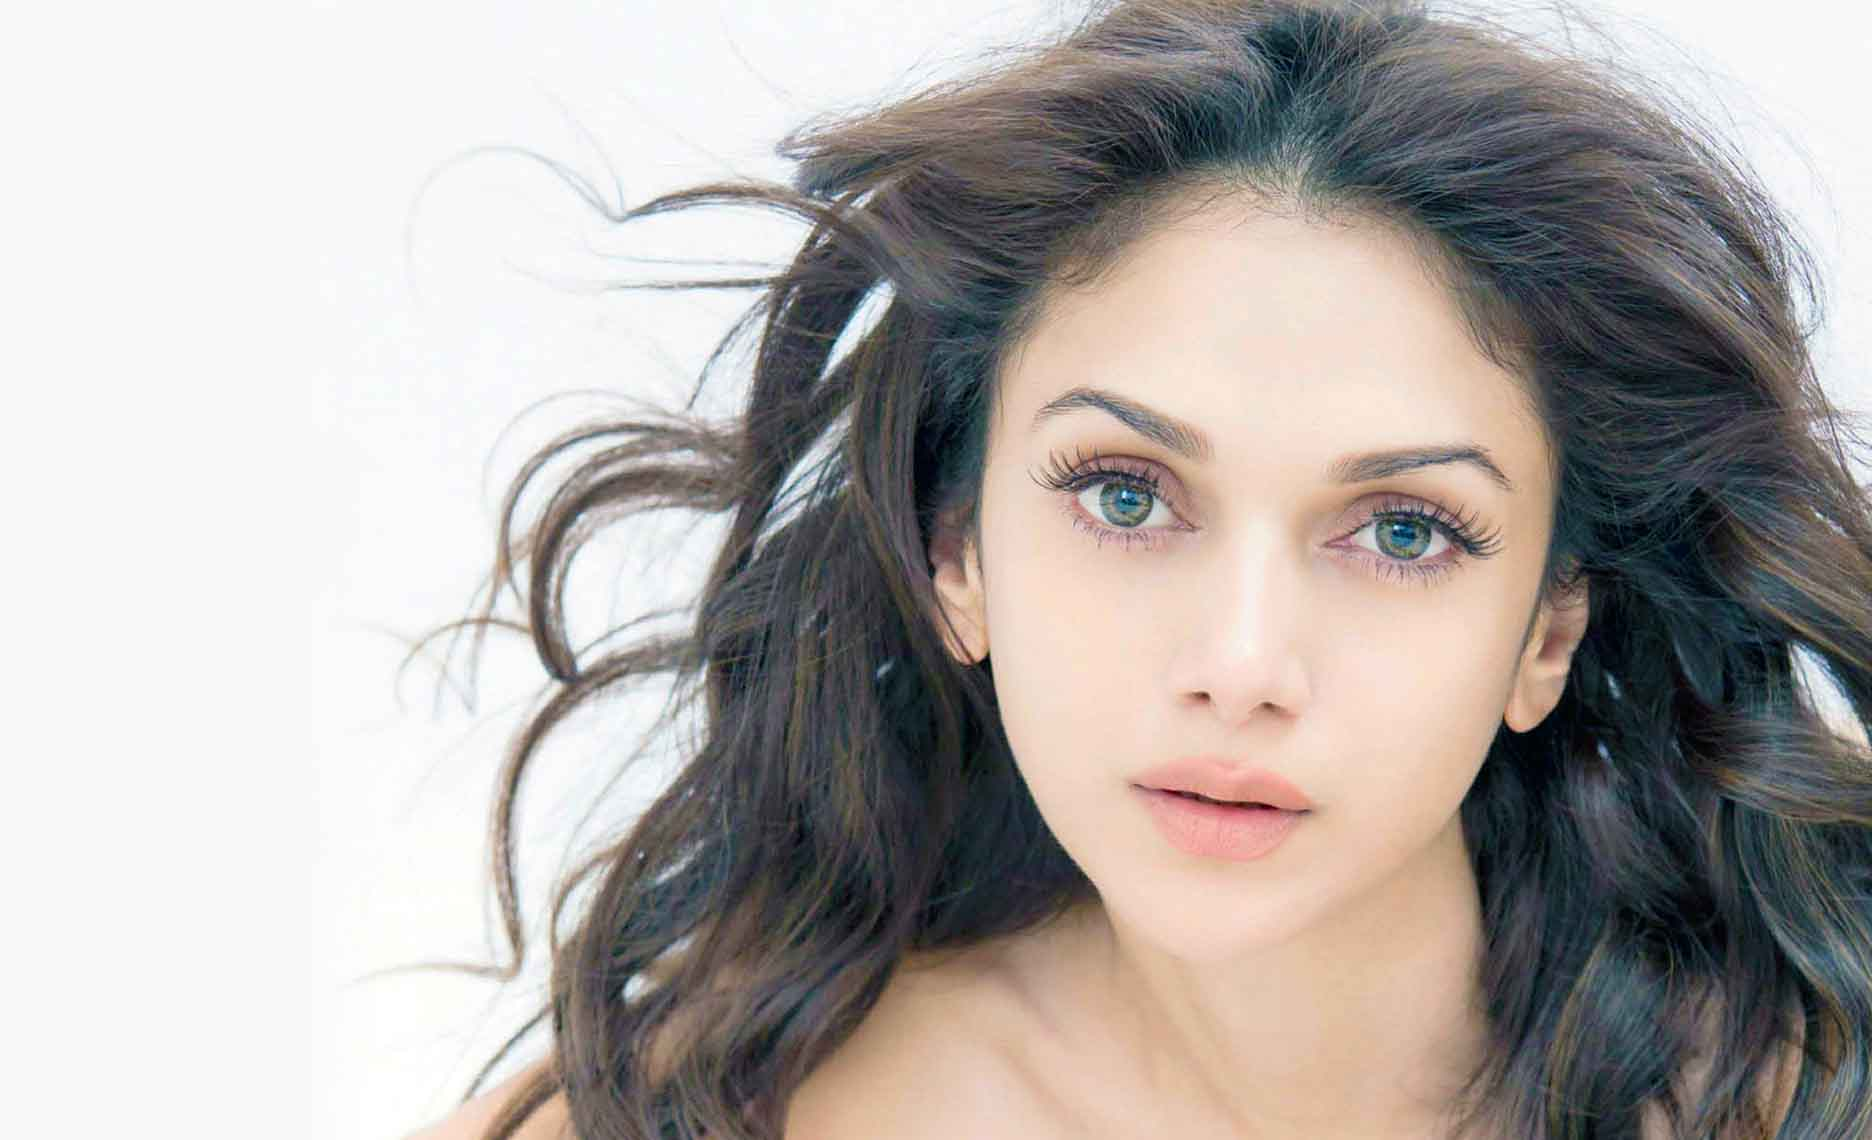 Aditi rao hydari face wallpapers